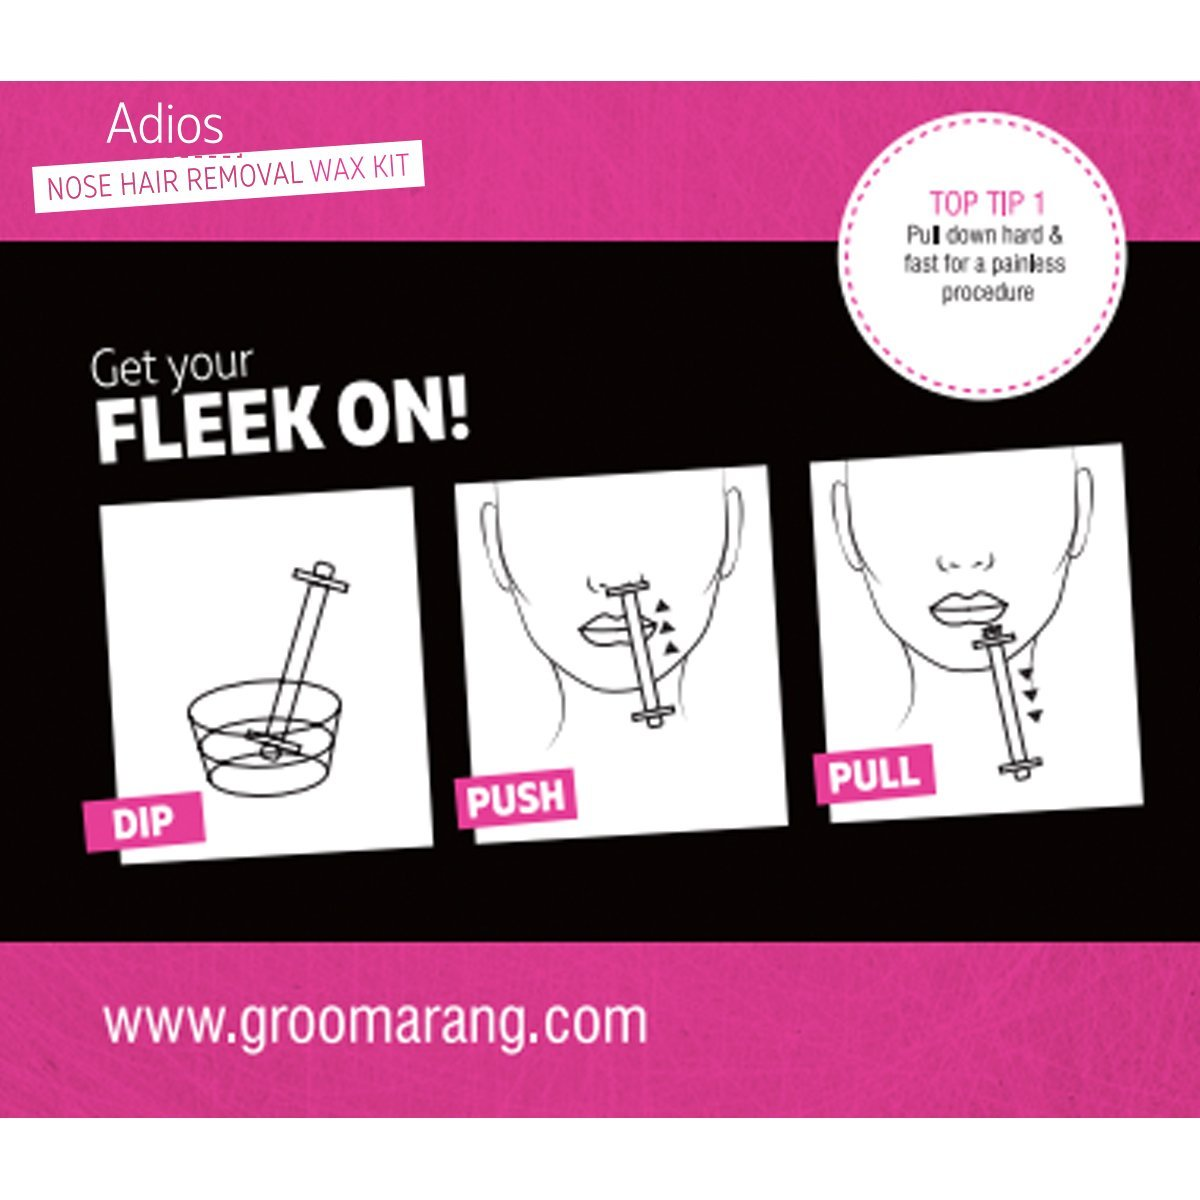 Groomarang For Her- Adios Nose Hair Removal Wax Kit For Her by  Beauty Pop Cosmetics